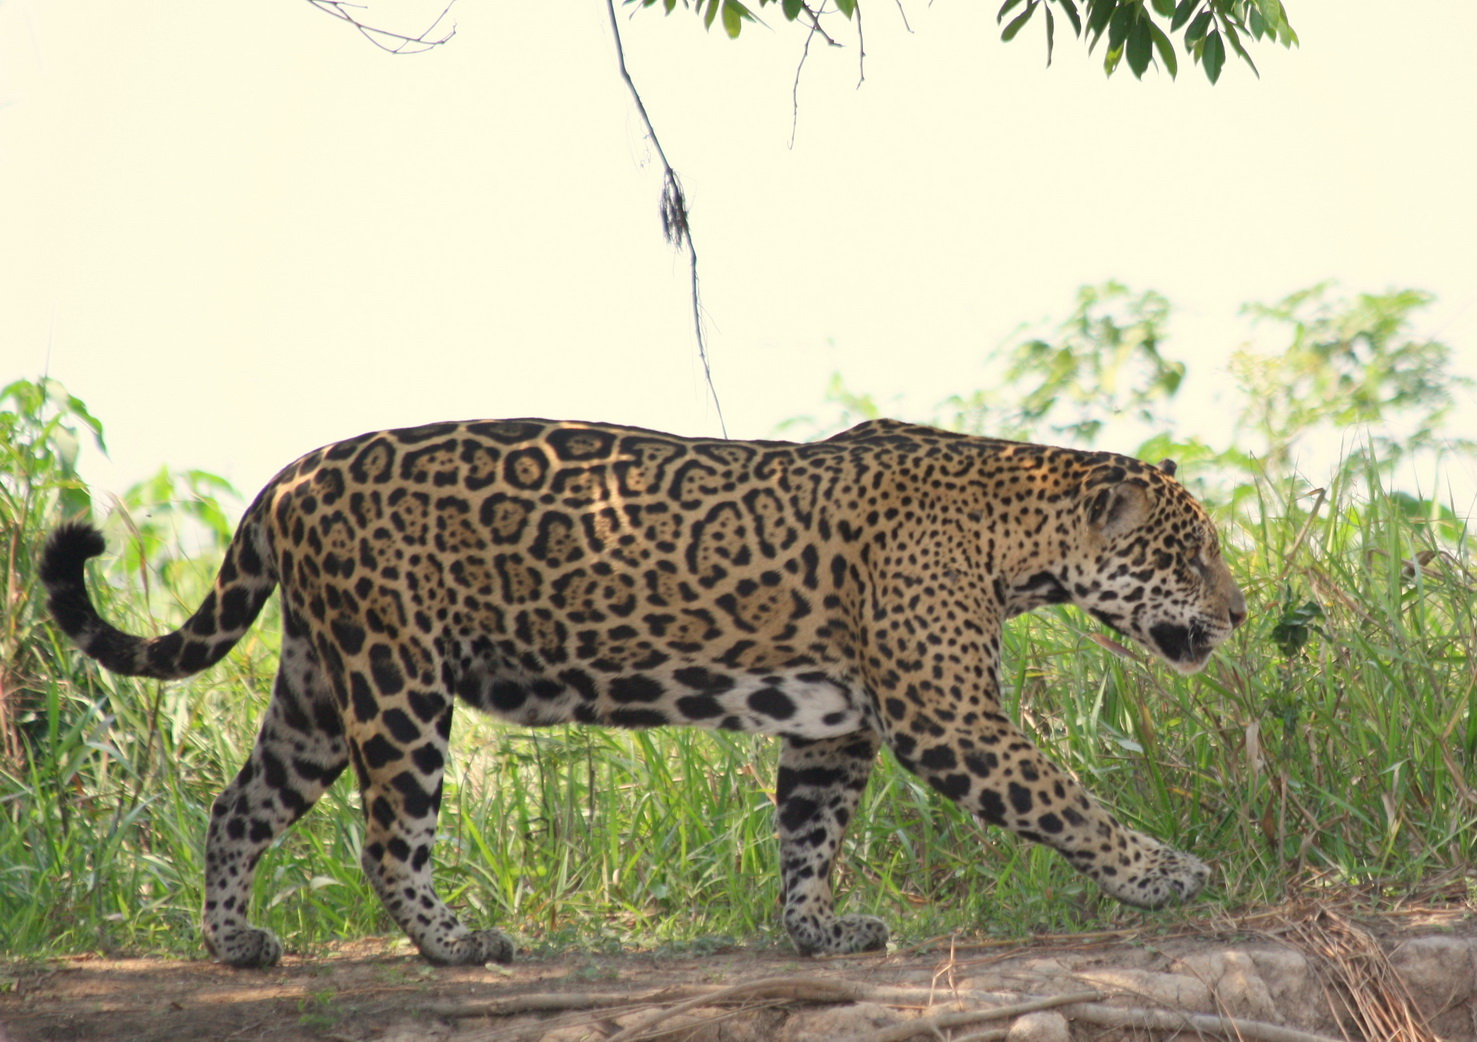 Gary West captured this wonderful leopard shot while on safari in Brazil